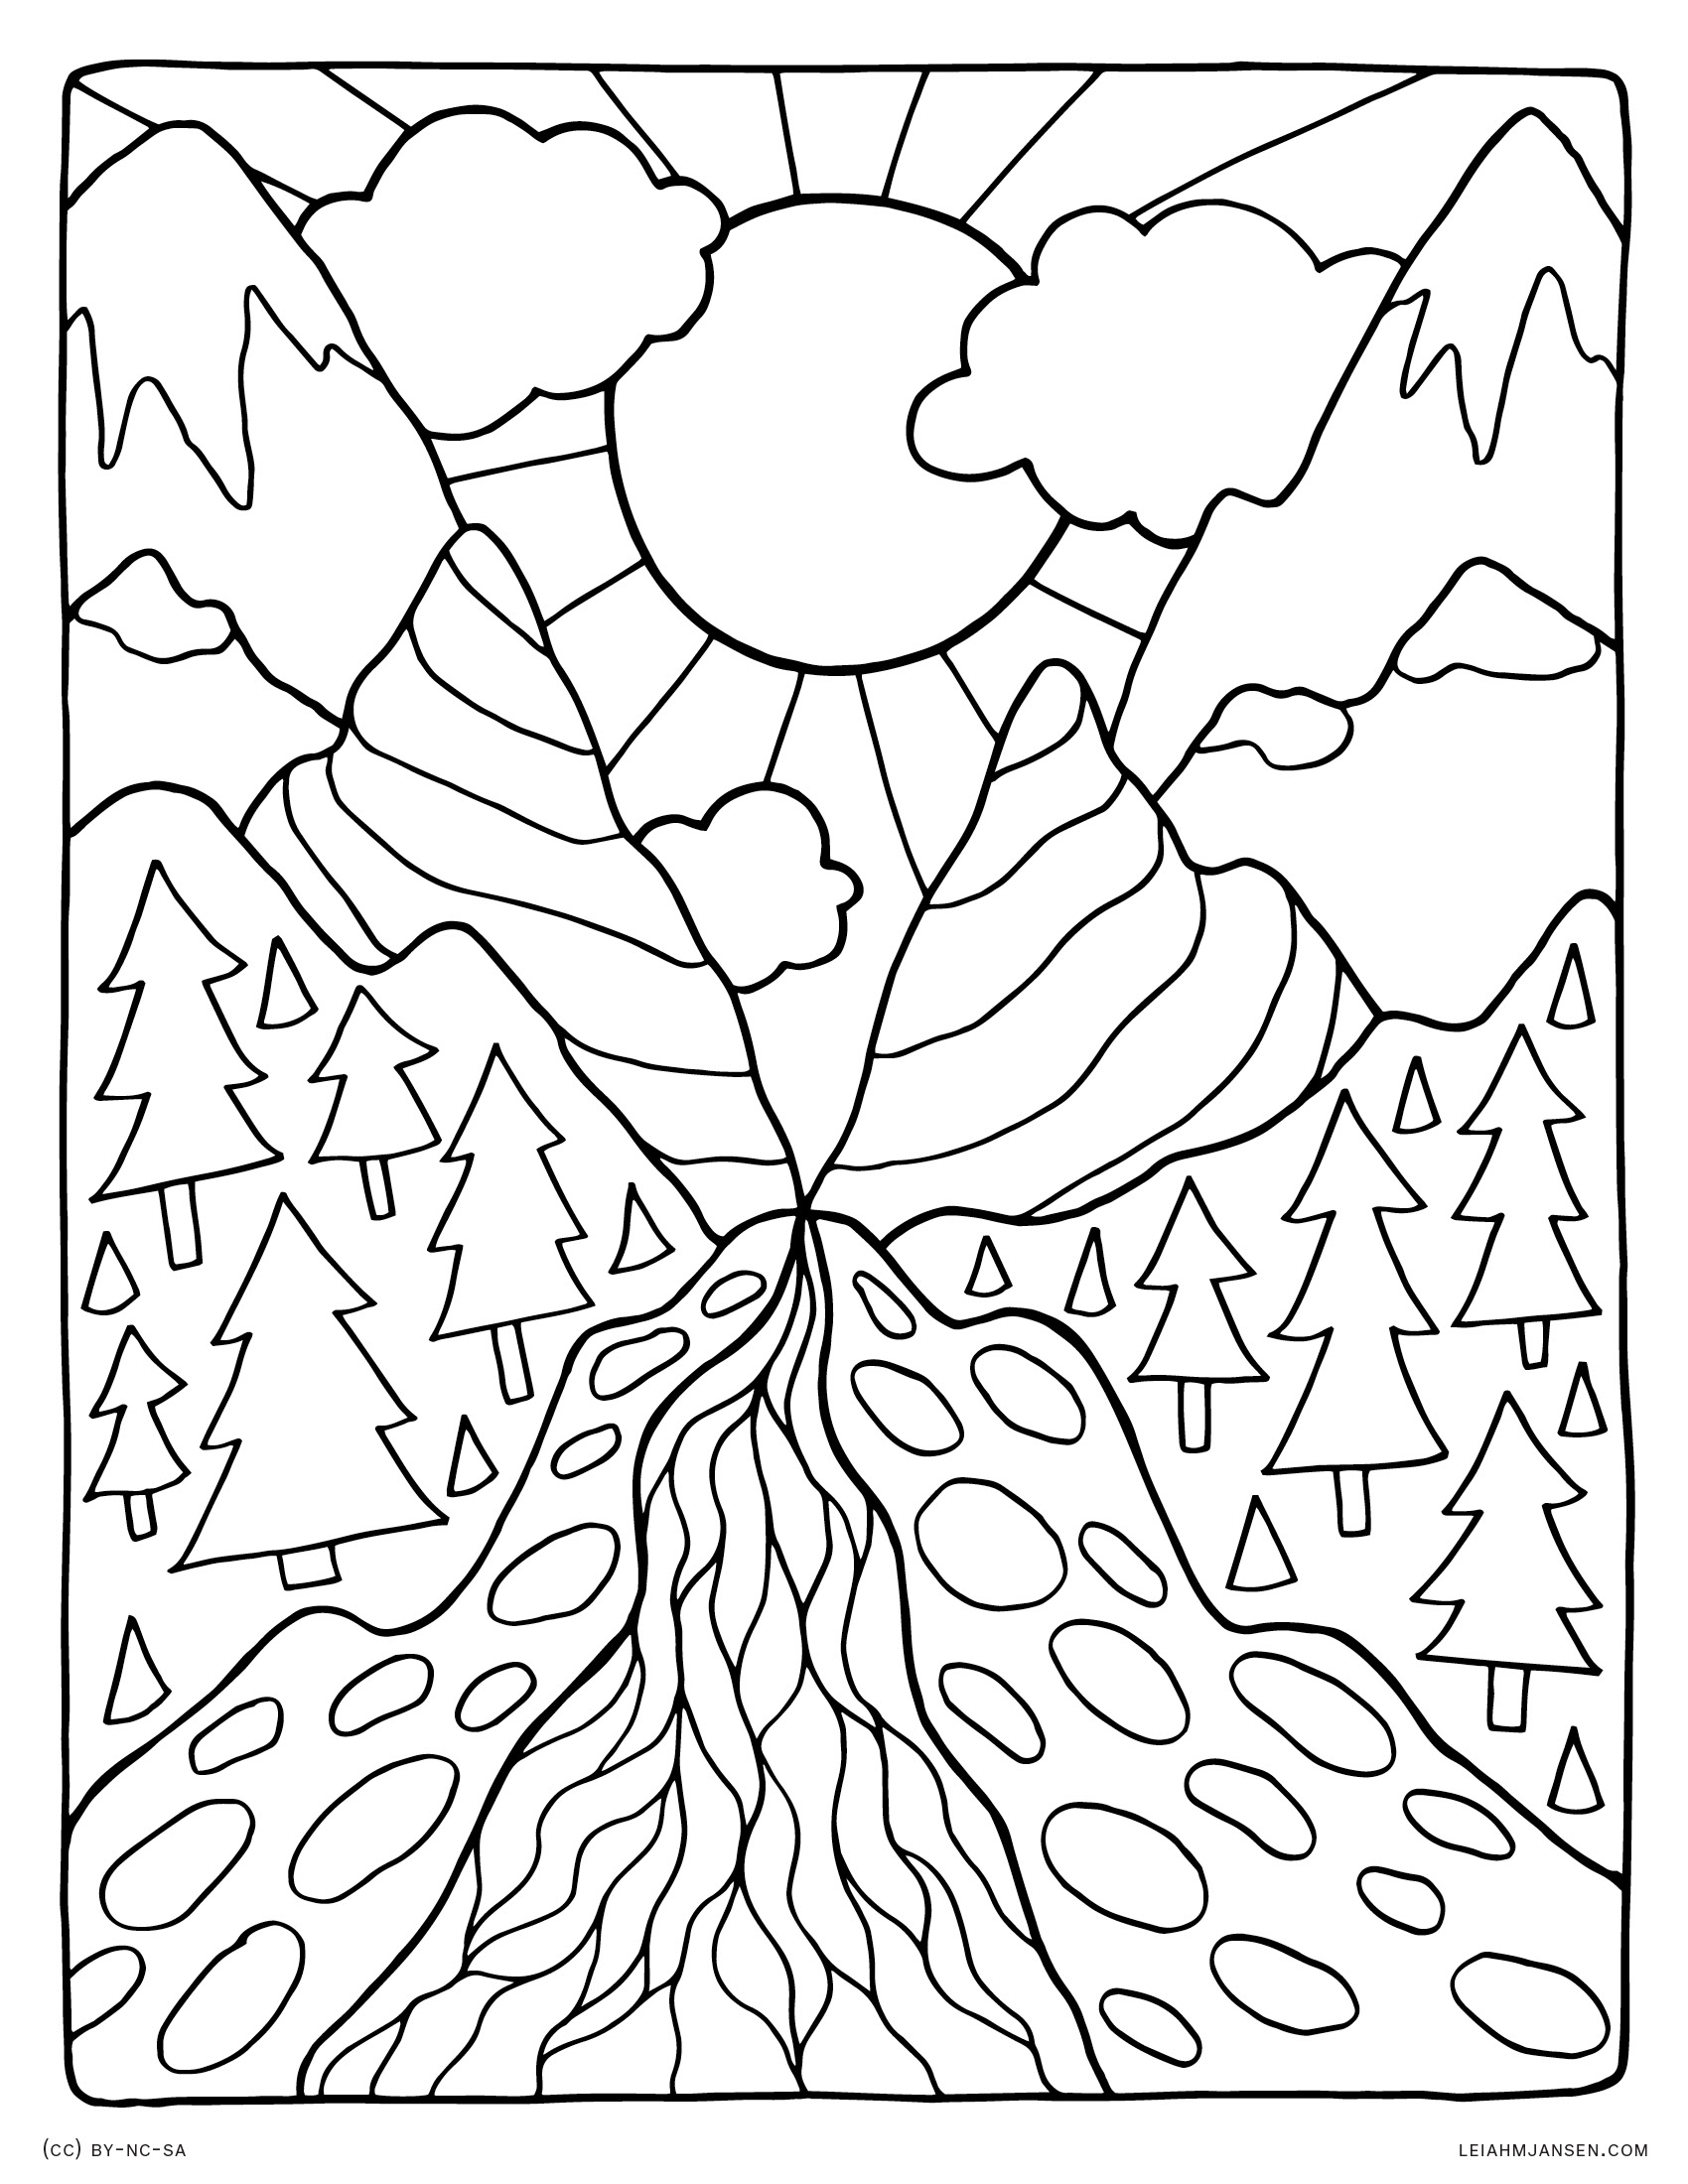 Spring Landscape Drawing at GetDrawings.com | Free for personal use ...